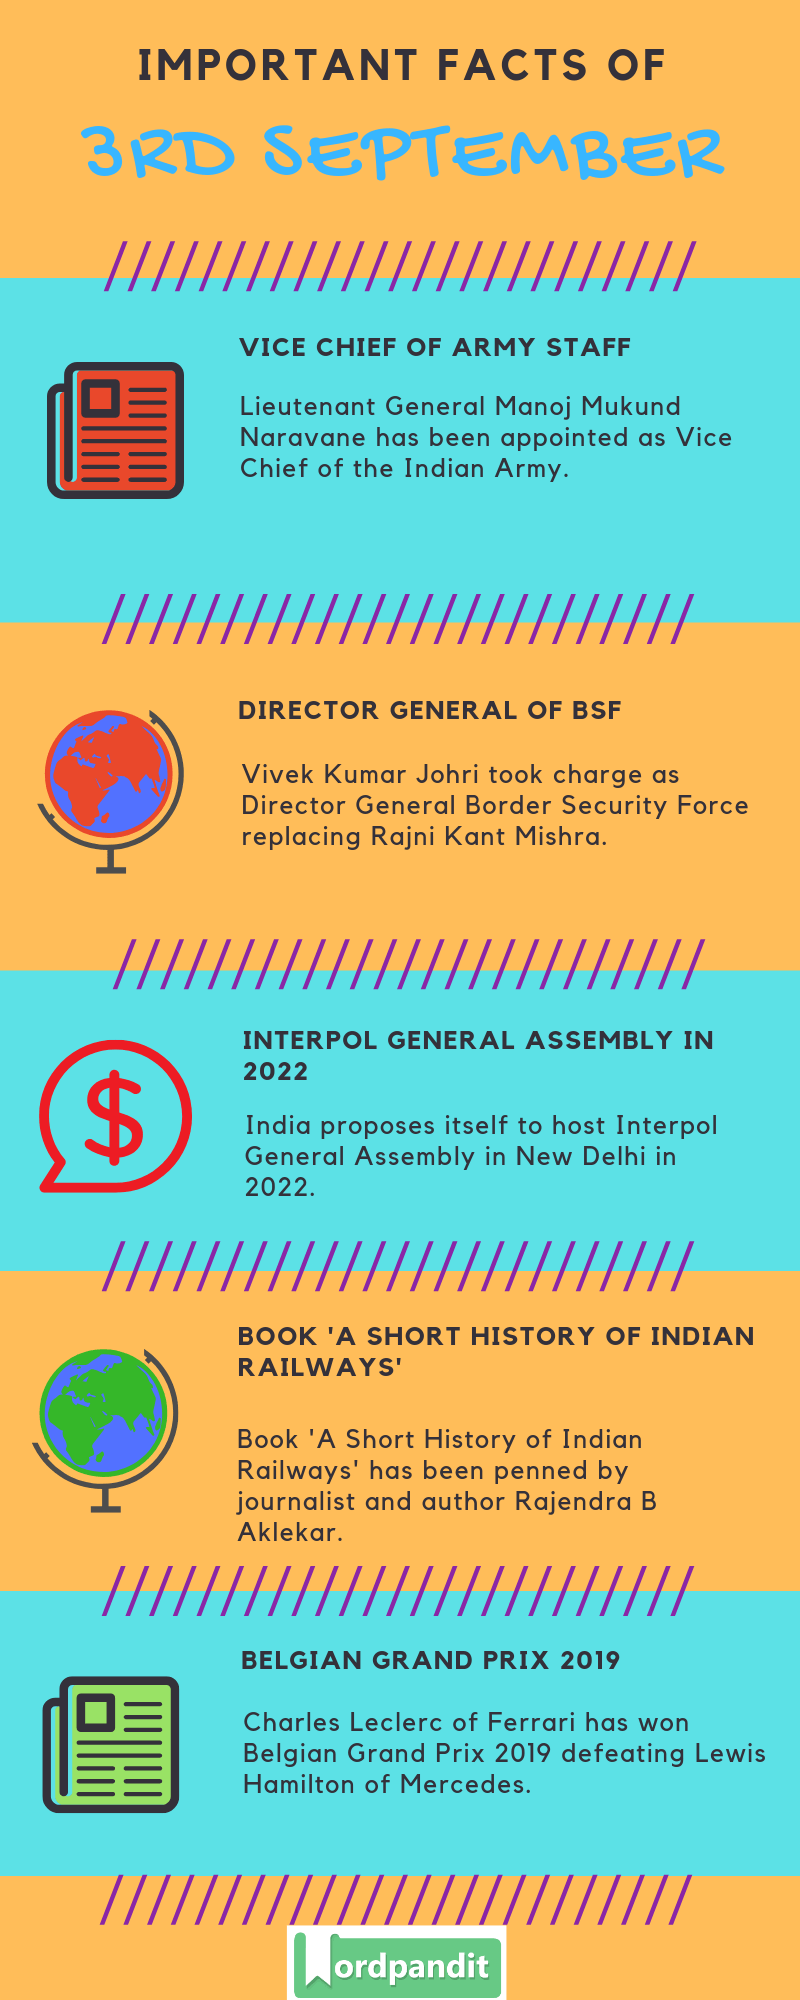 Daily Current Affairs 3 September 2019 Current Affairs Quiz 3 September 2019 Current Affairs Infographic